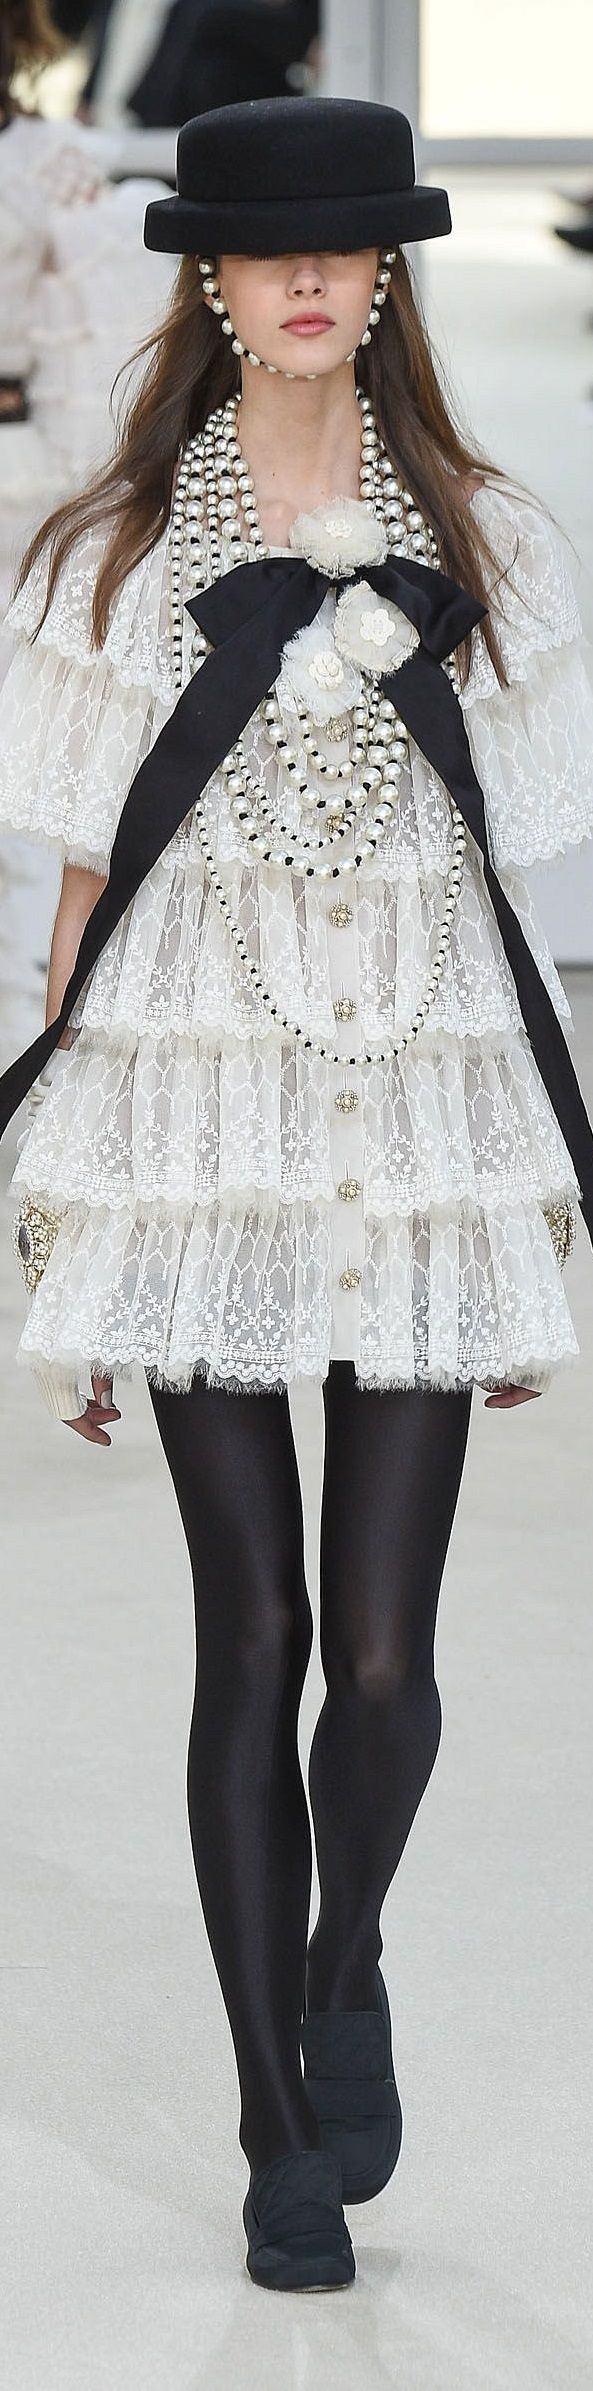 Chanel fall 2016 RTW. Chanel is showing a lot of black for Fall 2016.